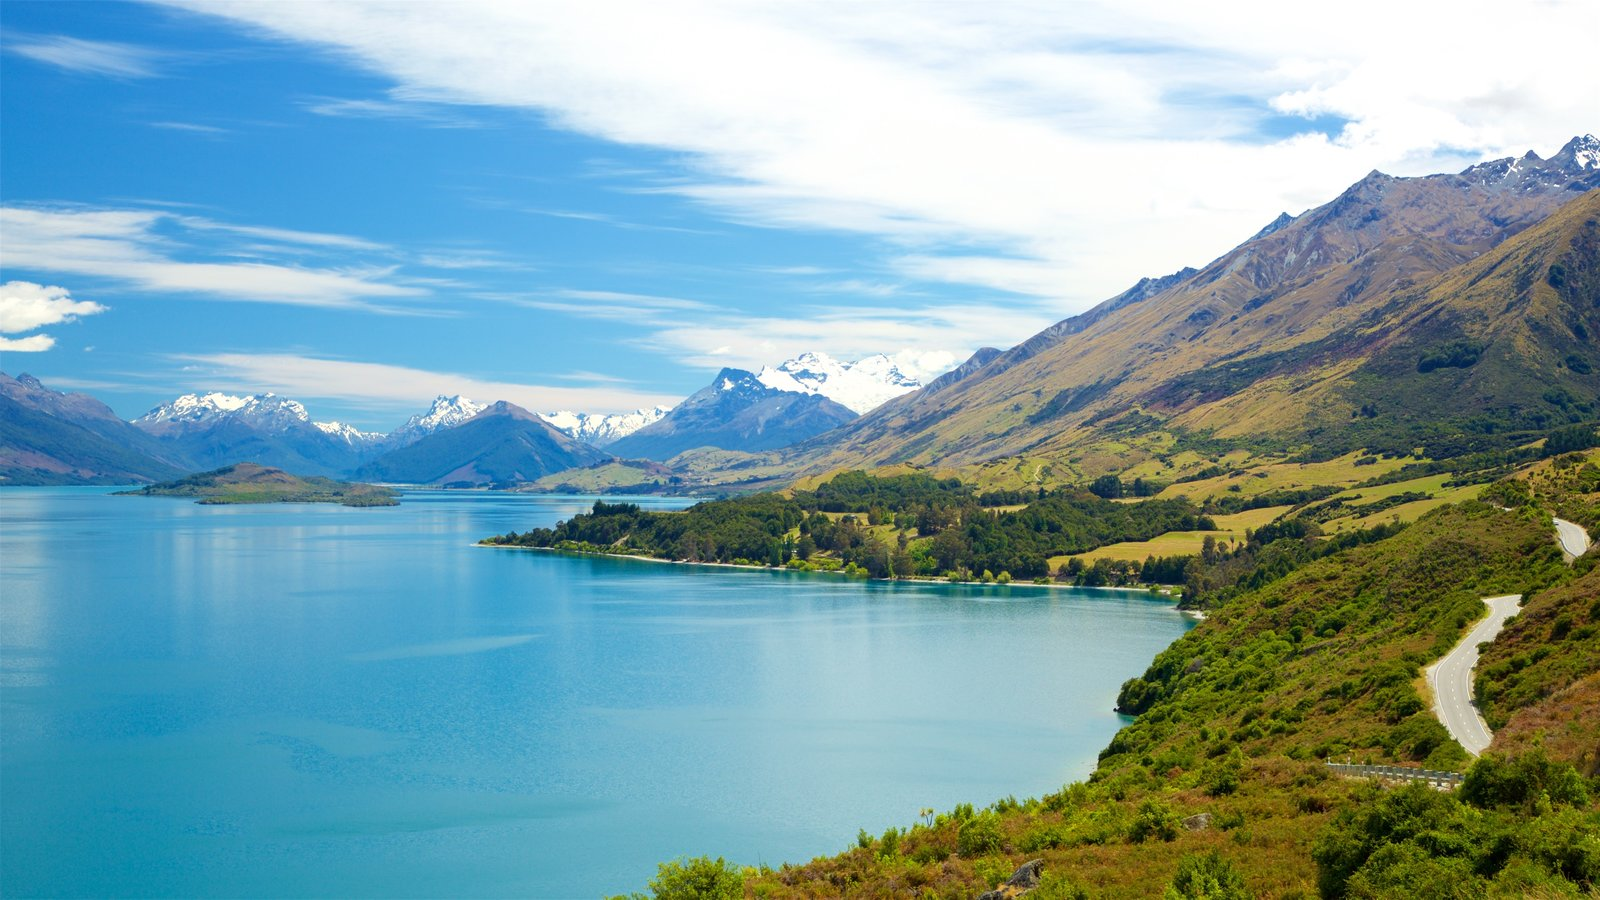 181377-lake-wakatipu.jpg